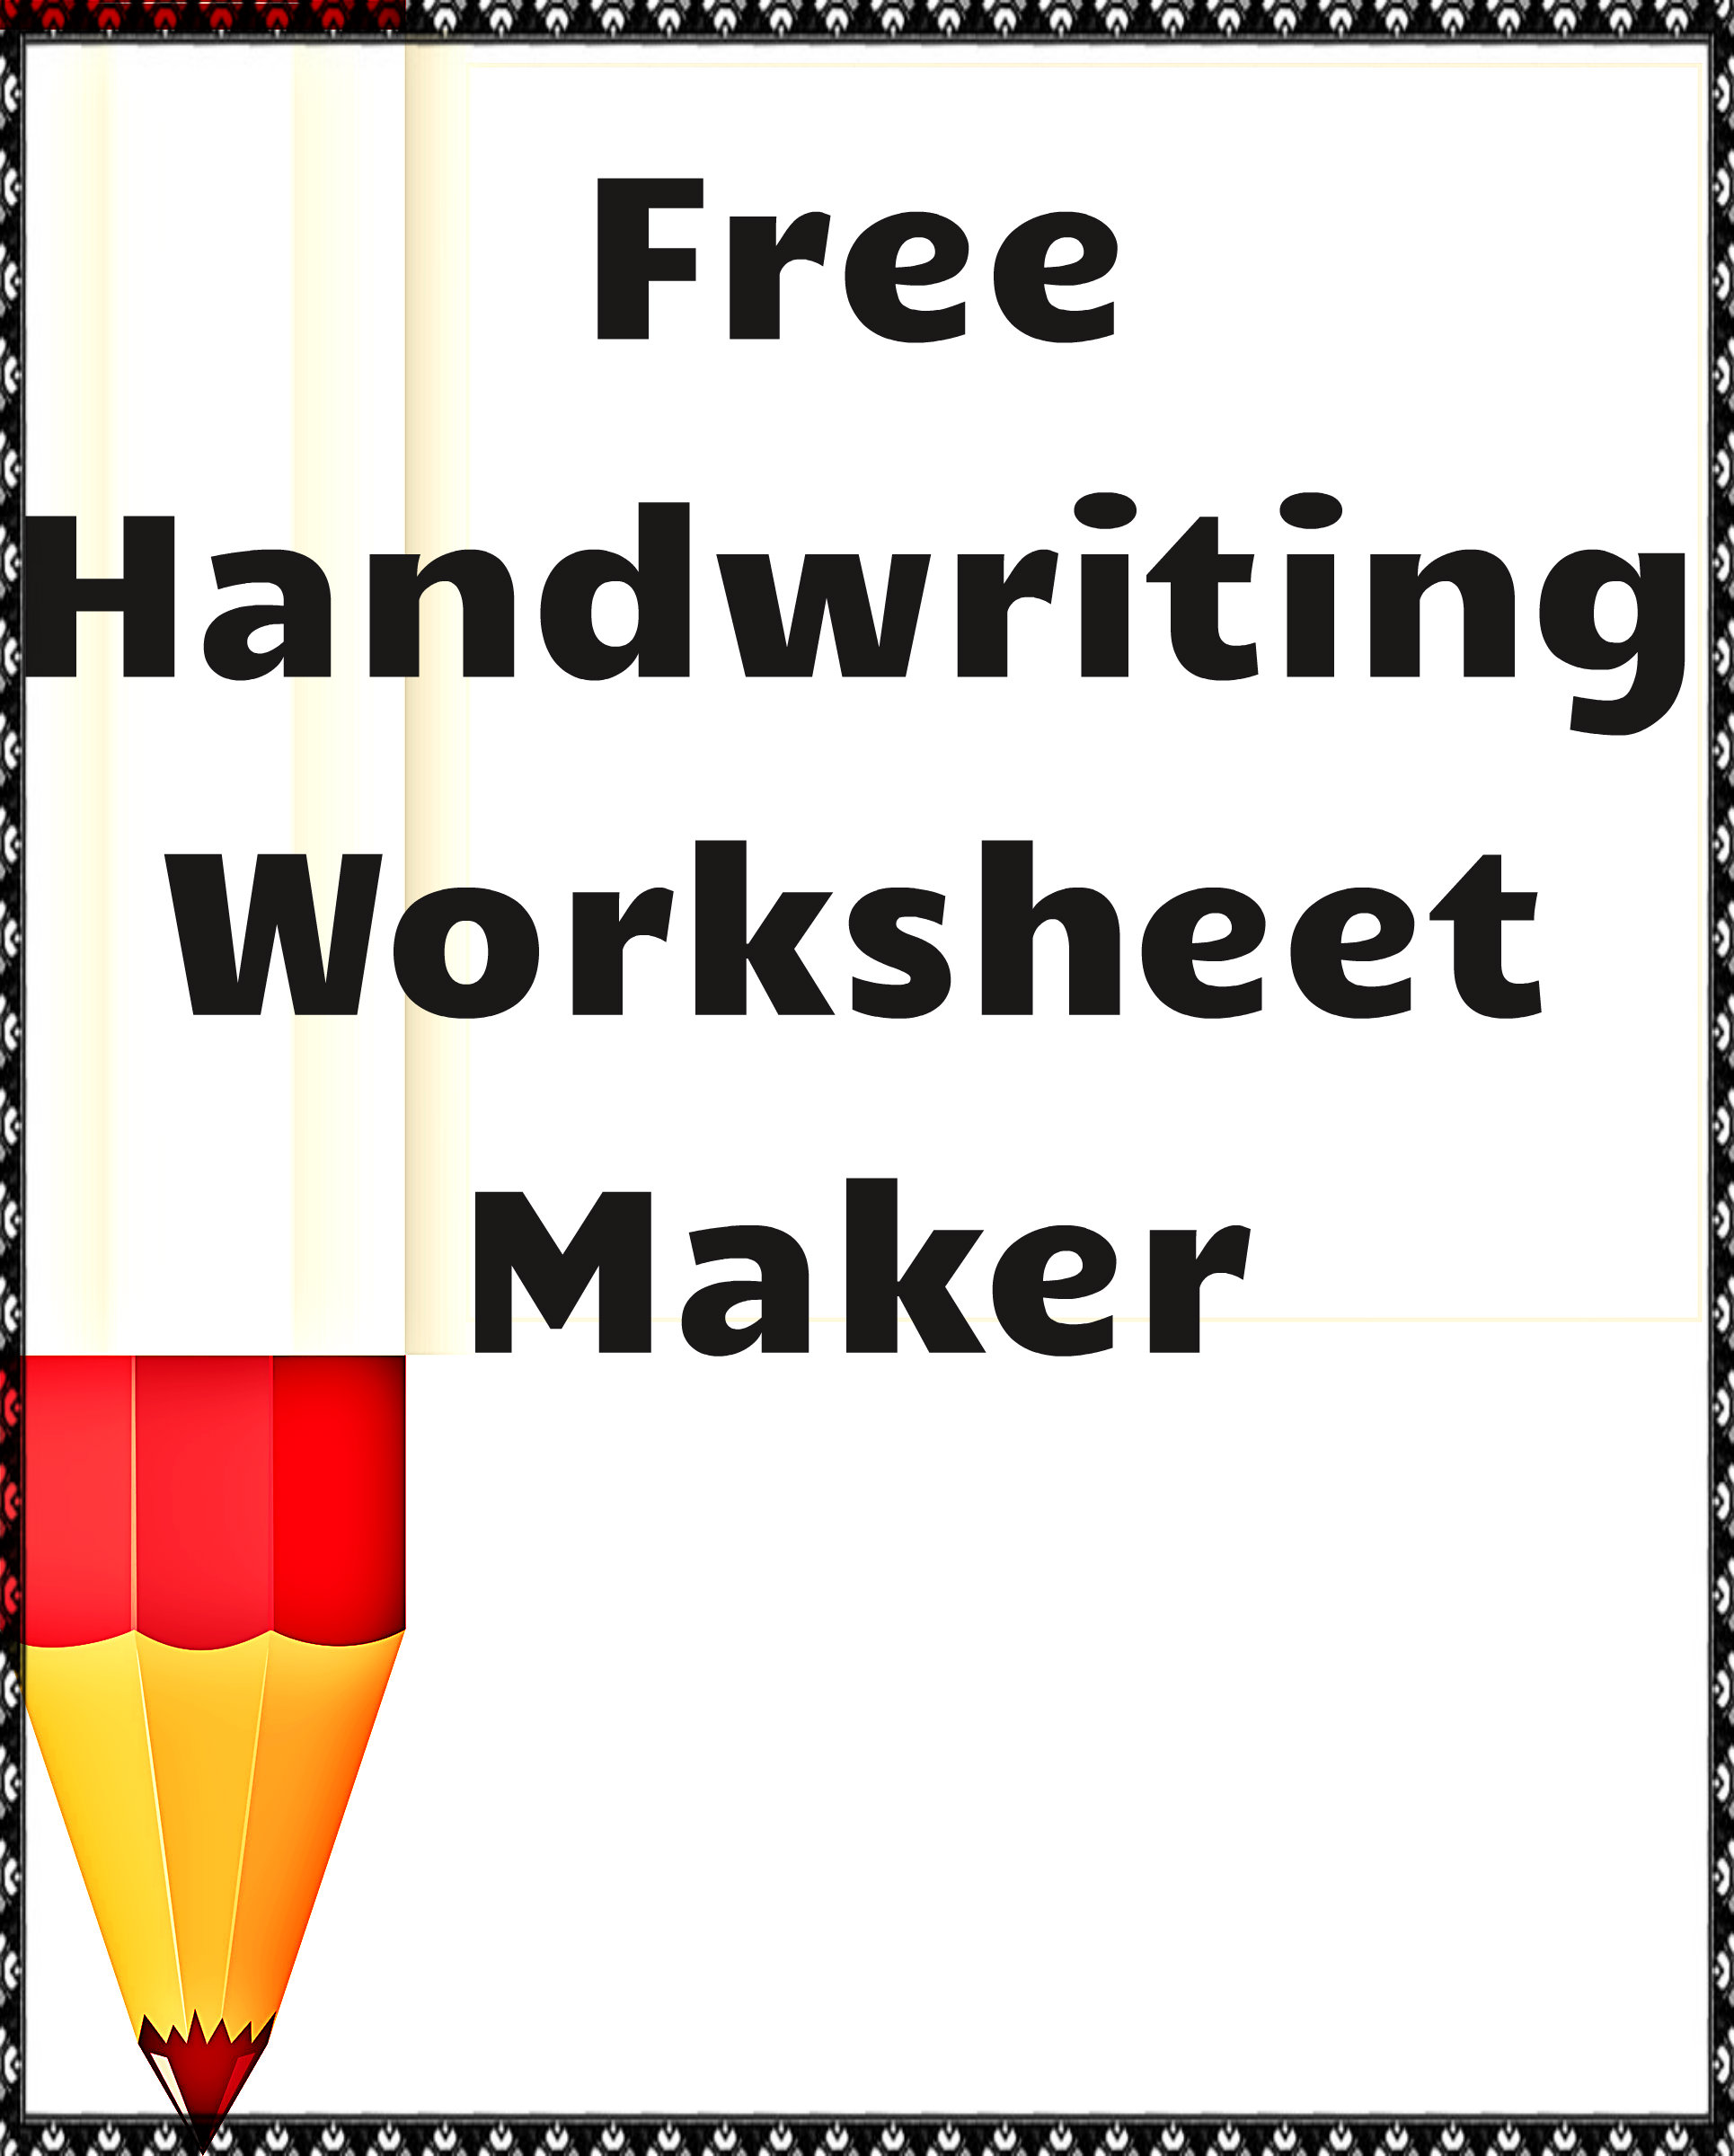 Cursive Writing Worksheet Generator | ABITLIKETHIS